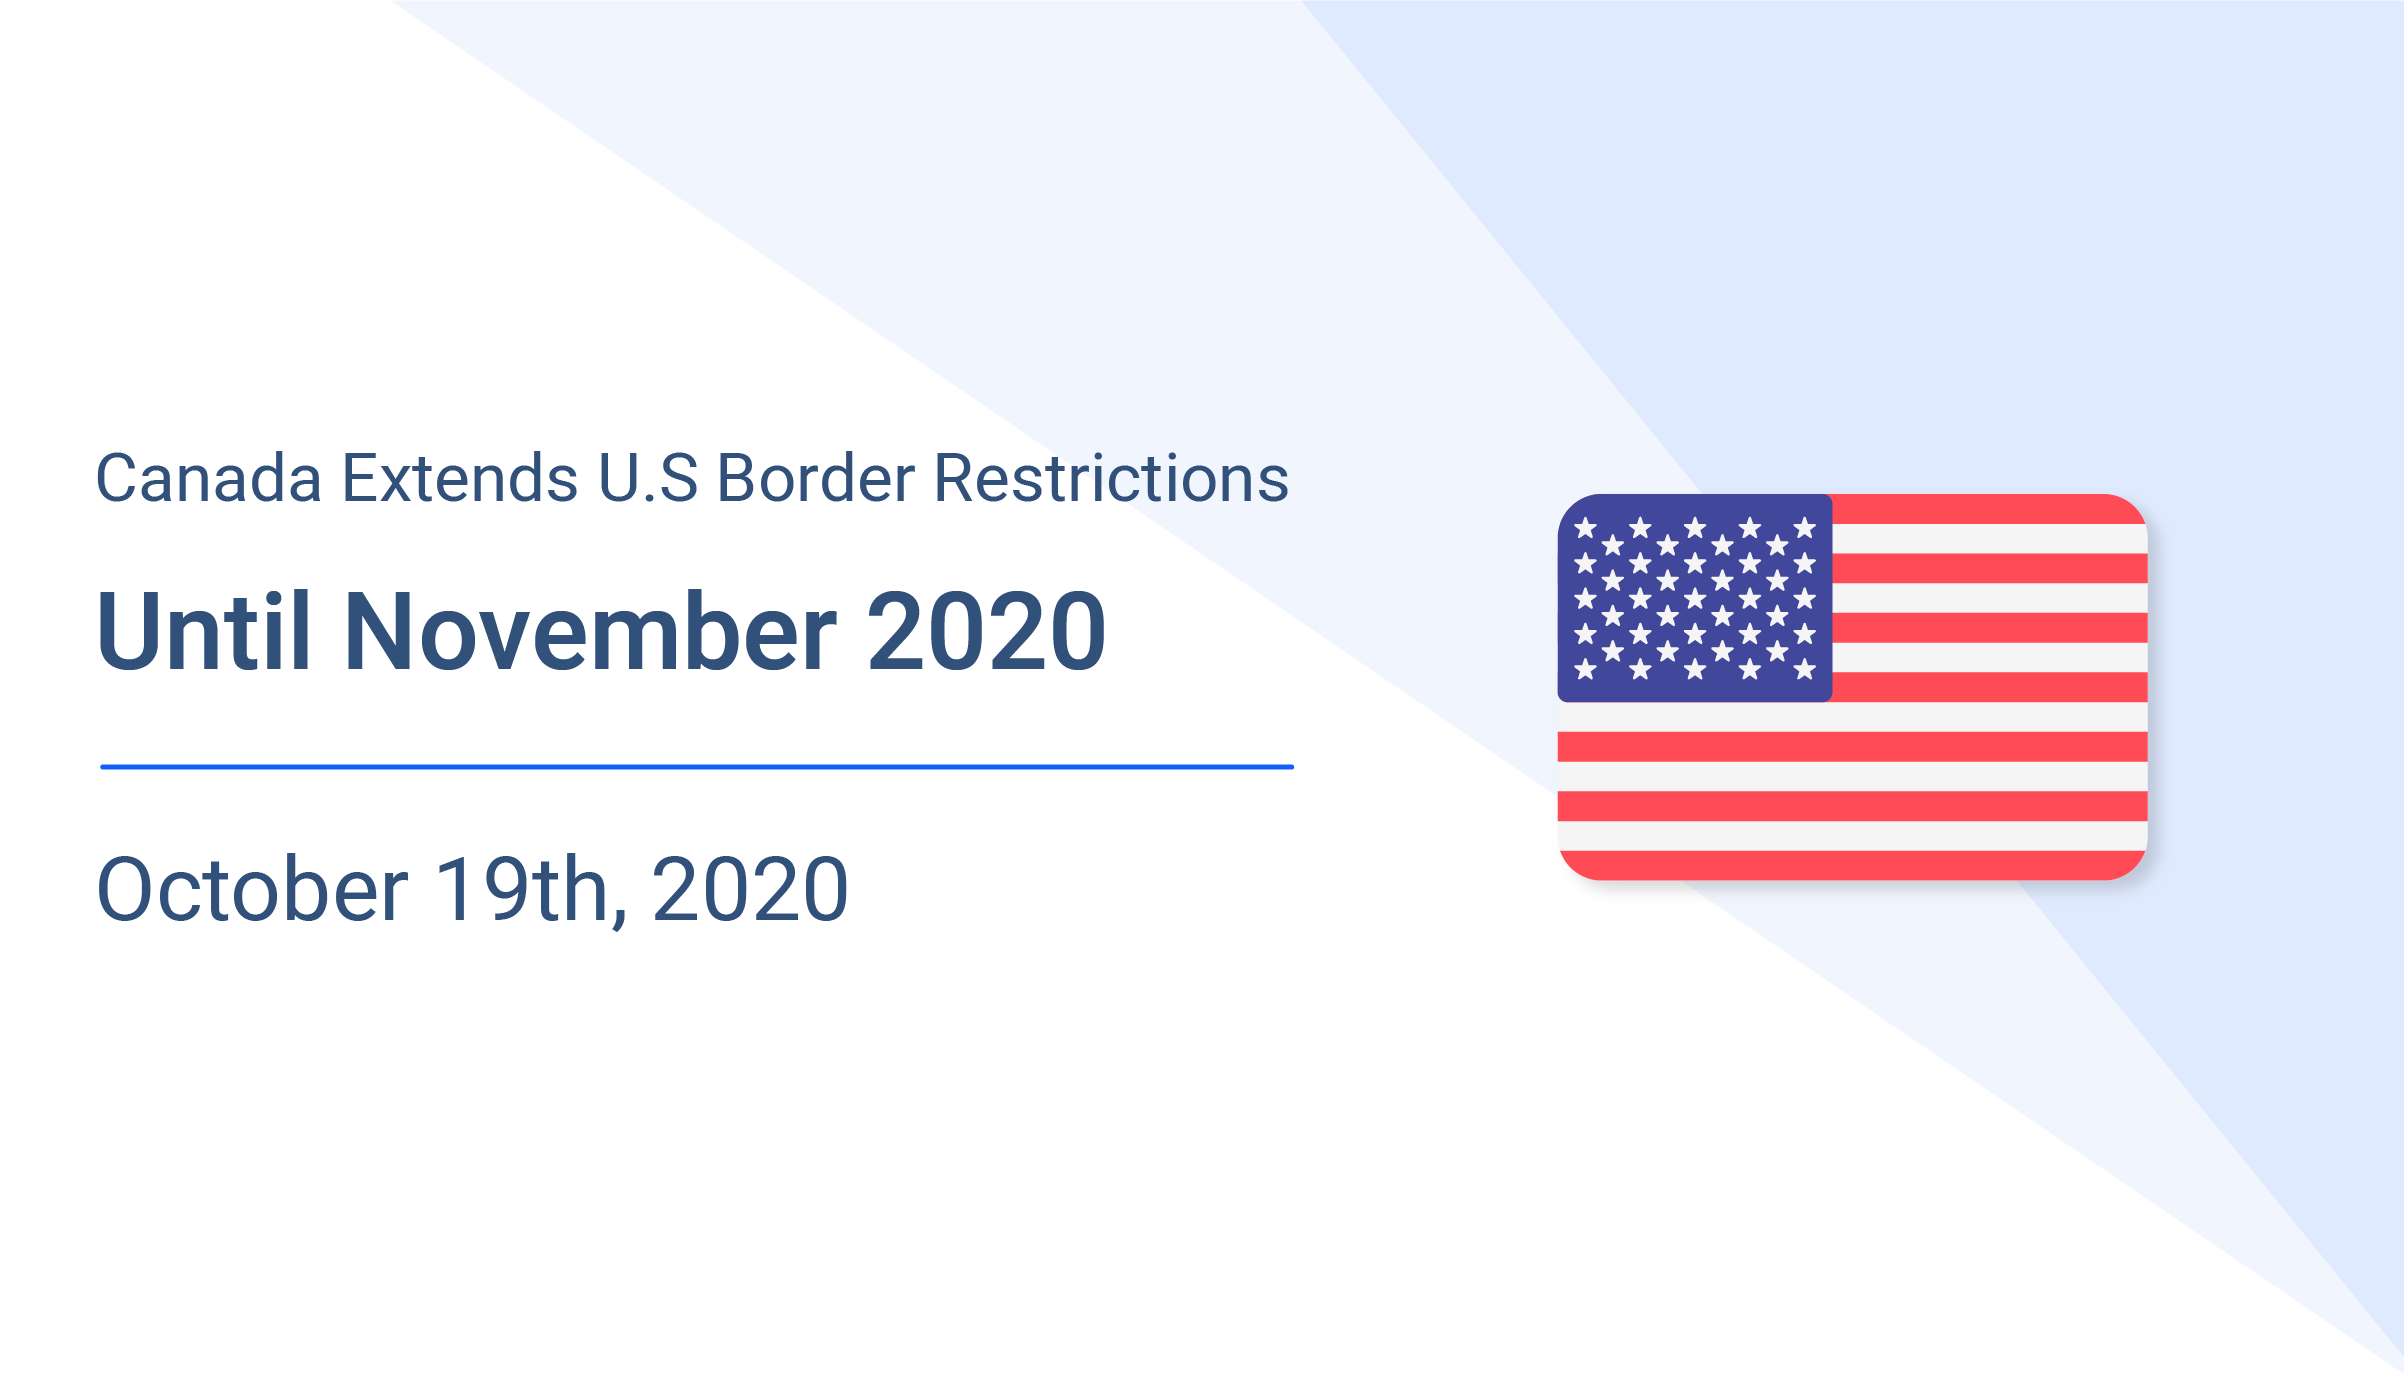 Canada Extends U.S Border Restrictions Until November 2020